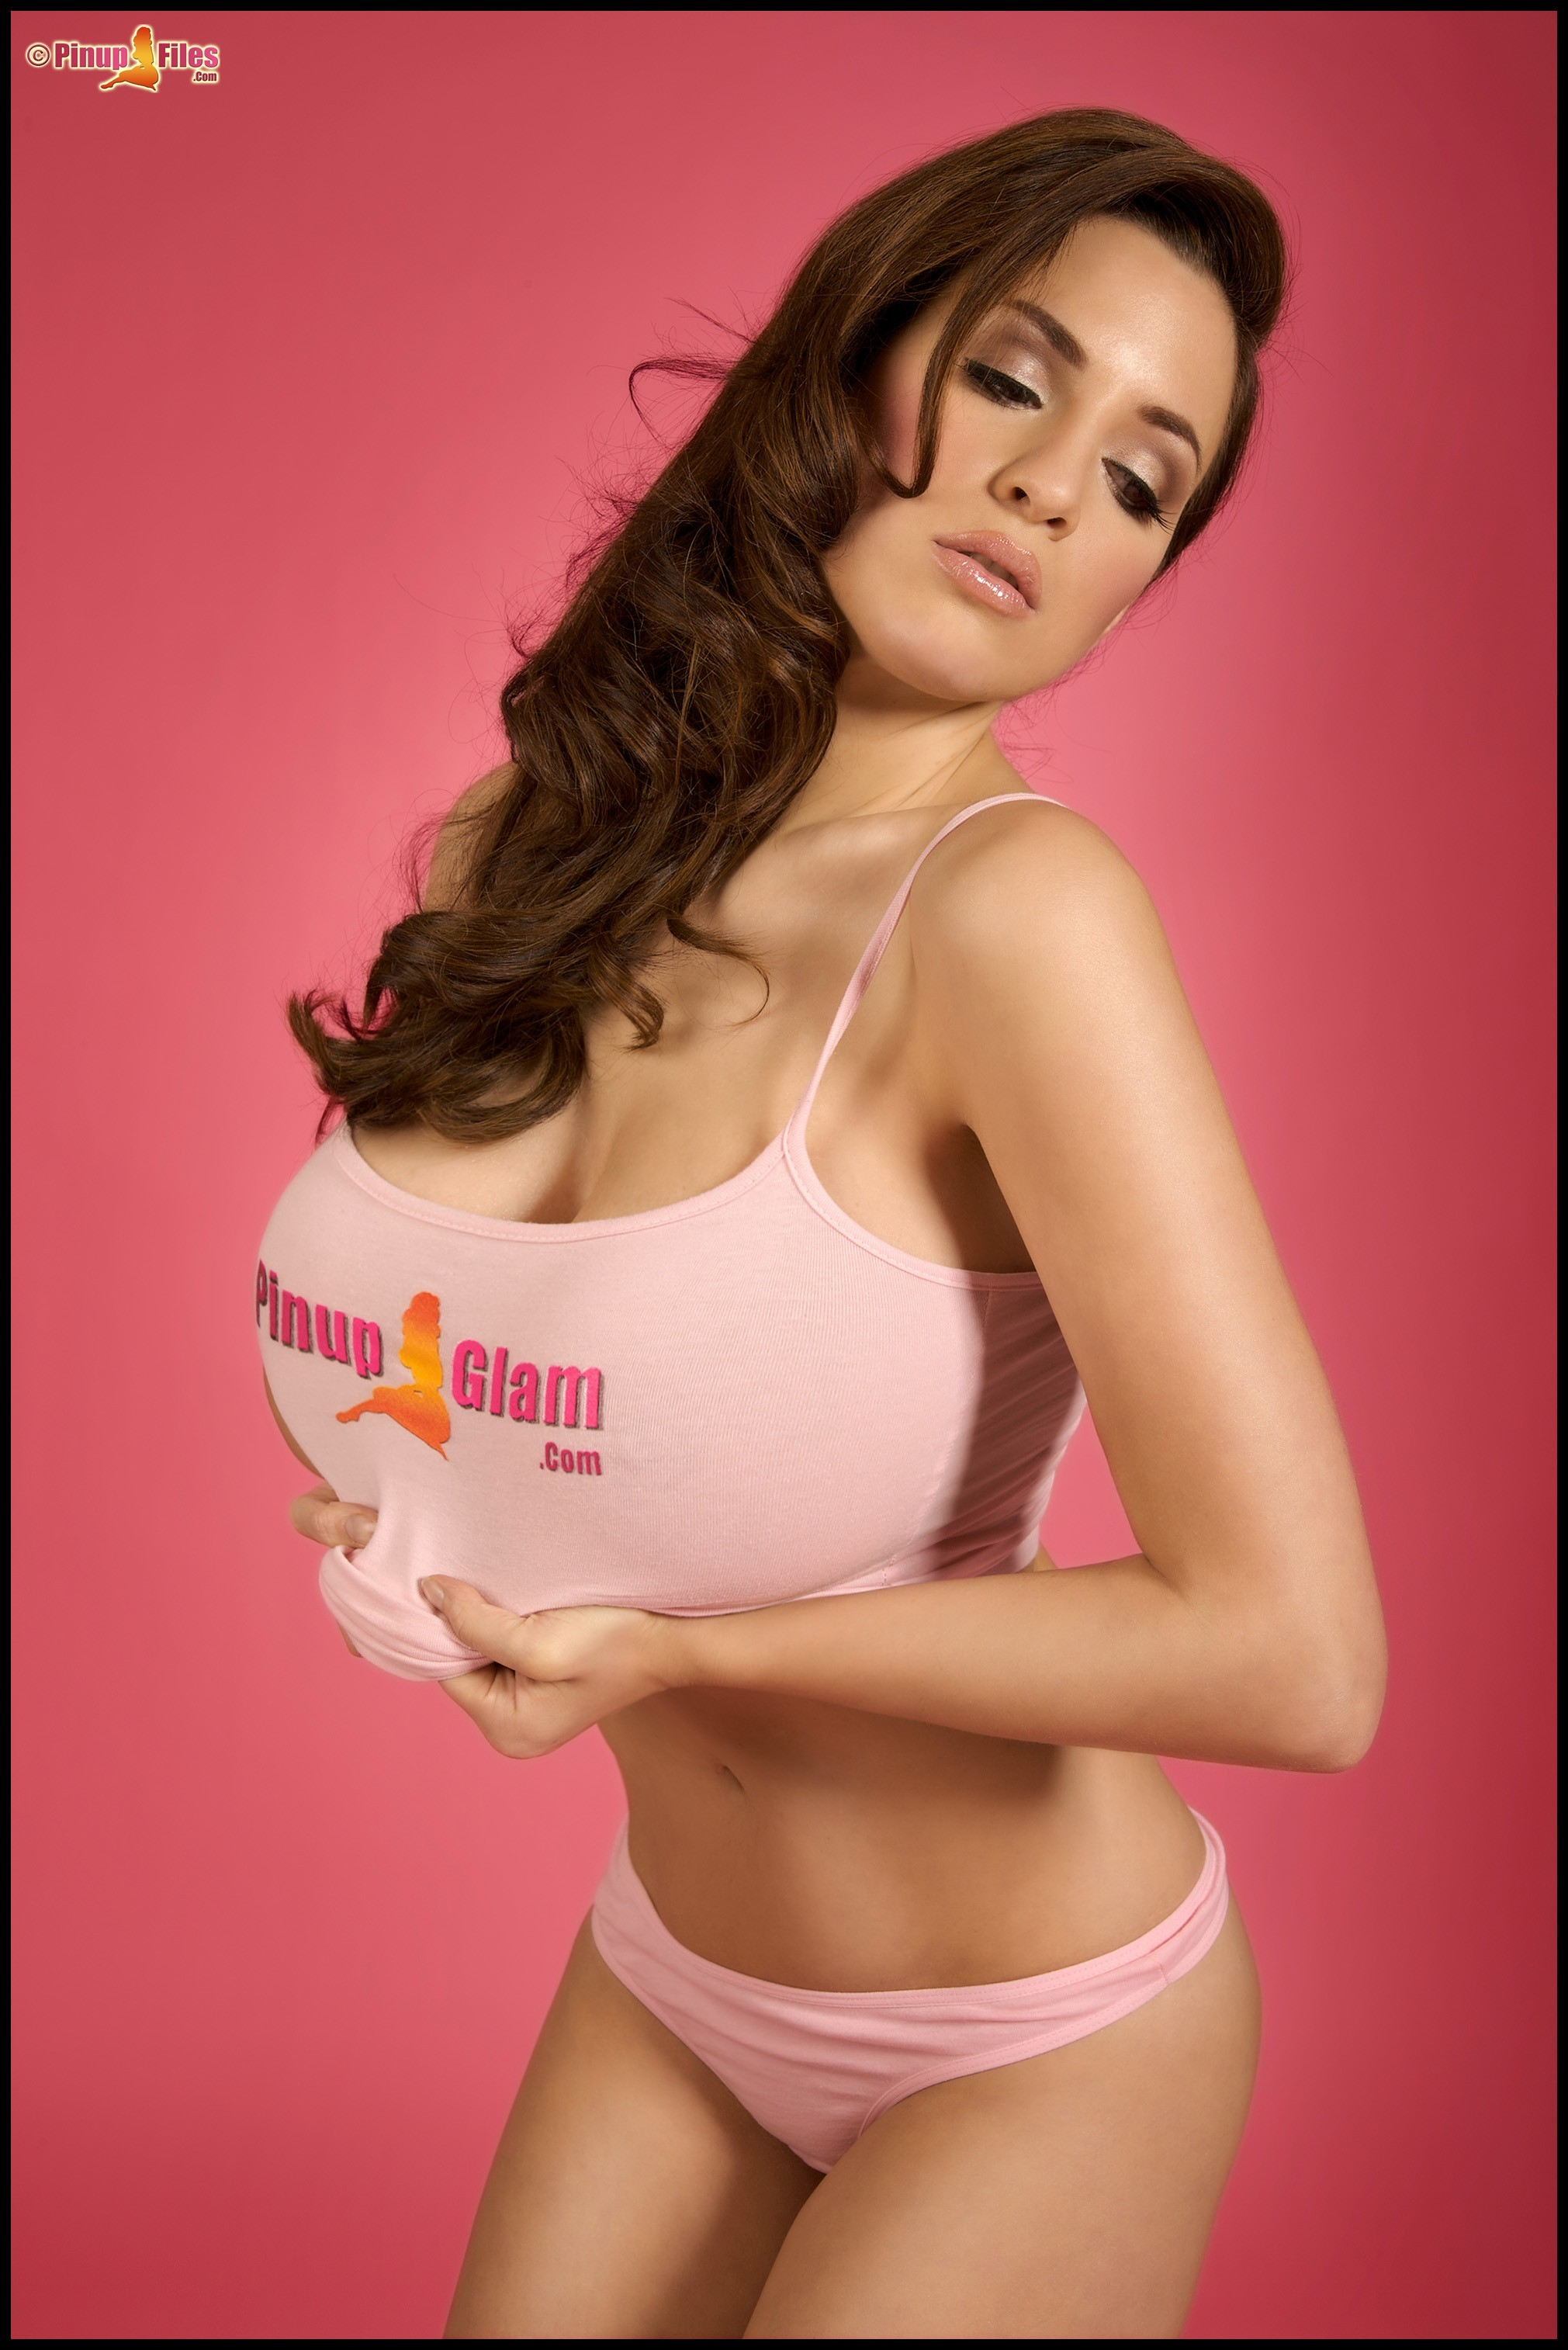 jordan Carver pinup files HD Wallpaper